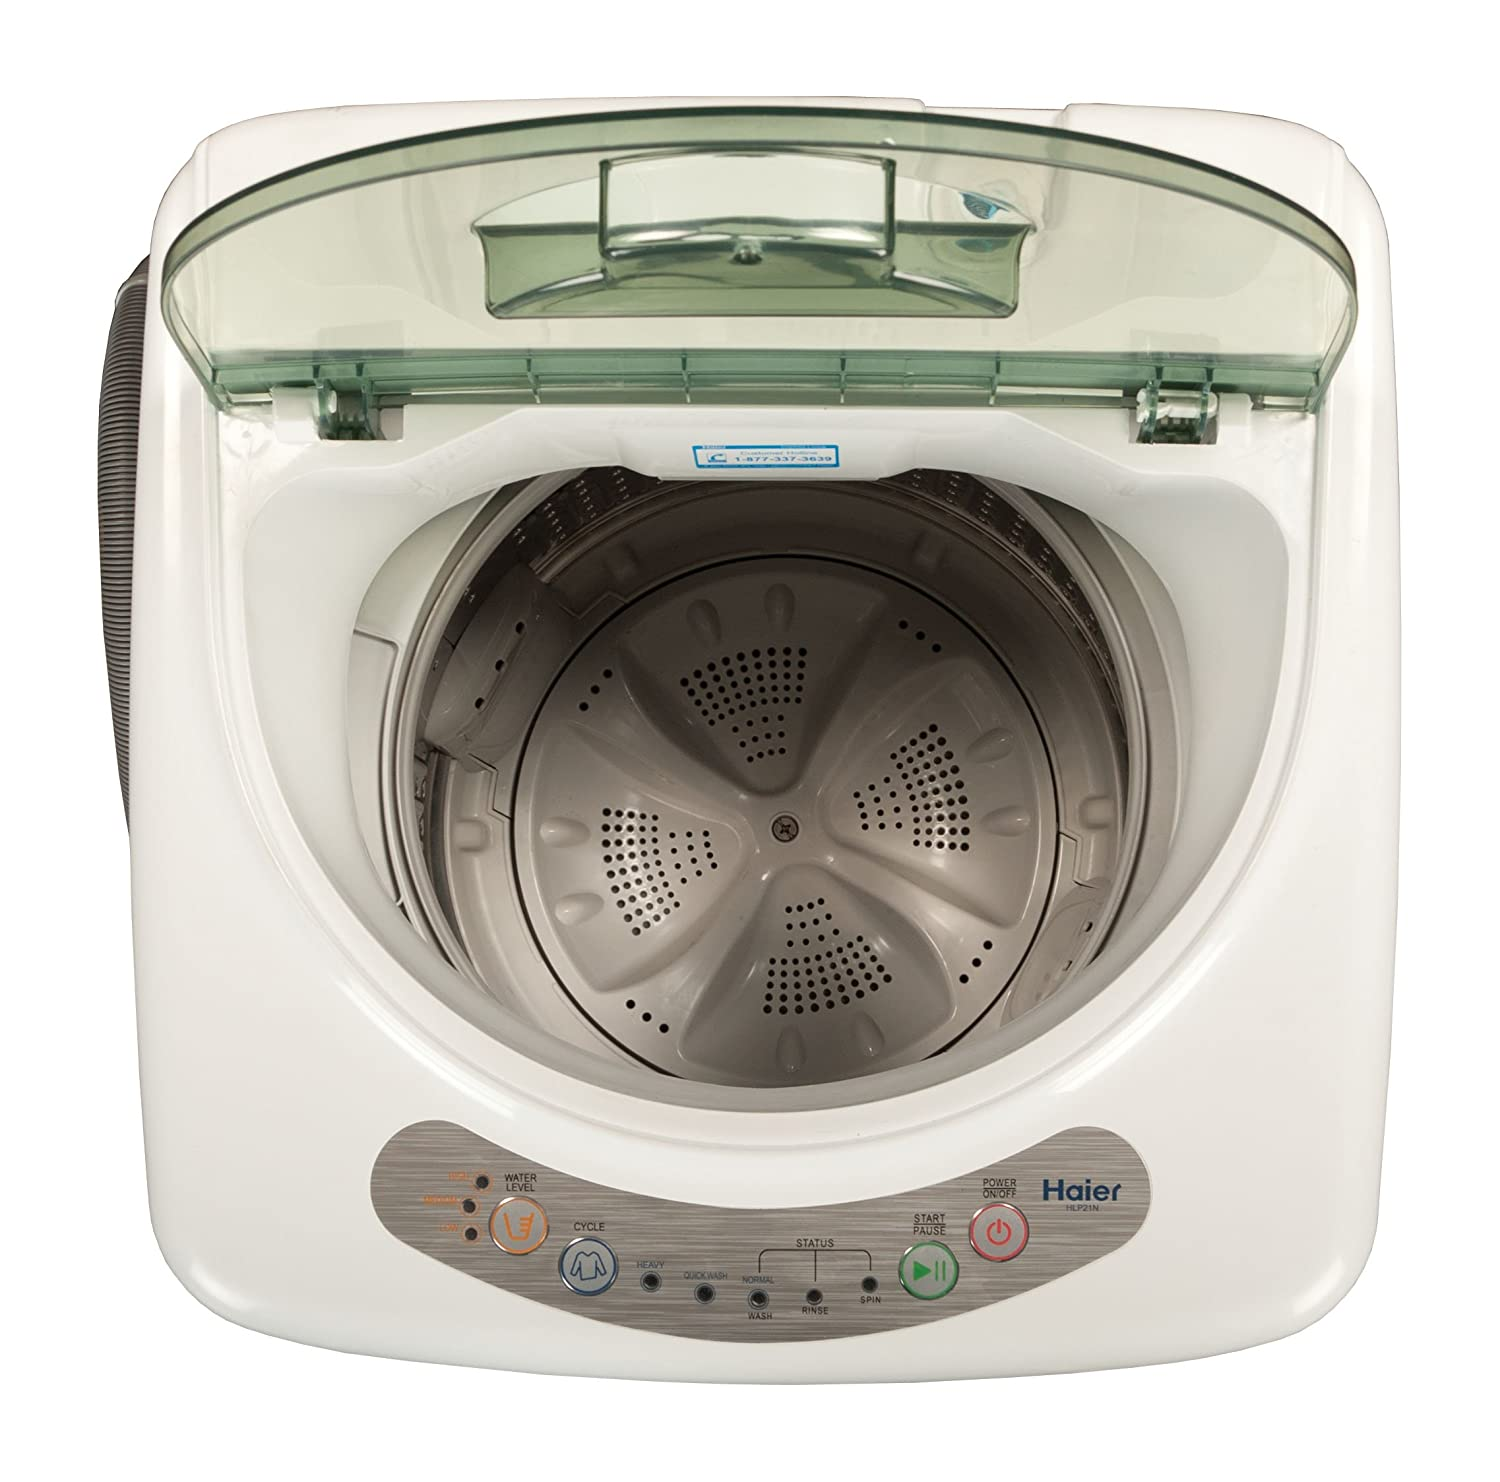 Amazon.com: Haier HLP21N Pulsator 1 Cubic Foot Portable Washer: Appliances